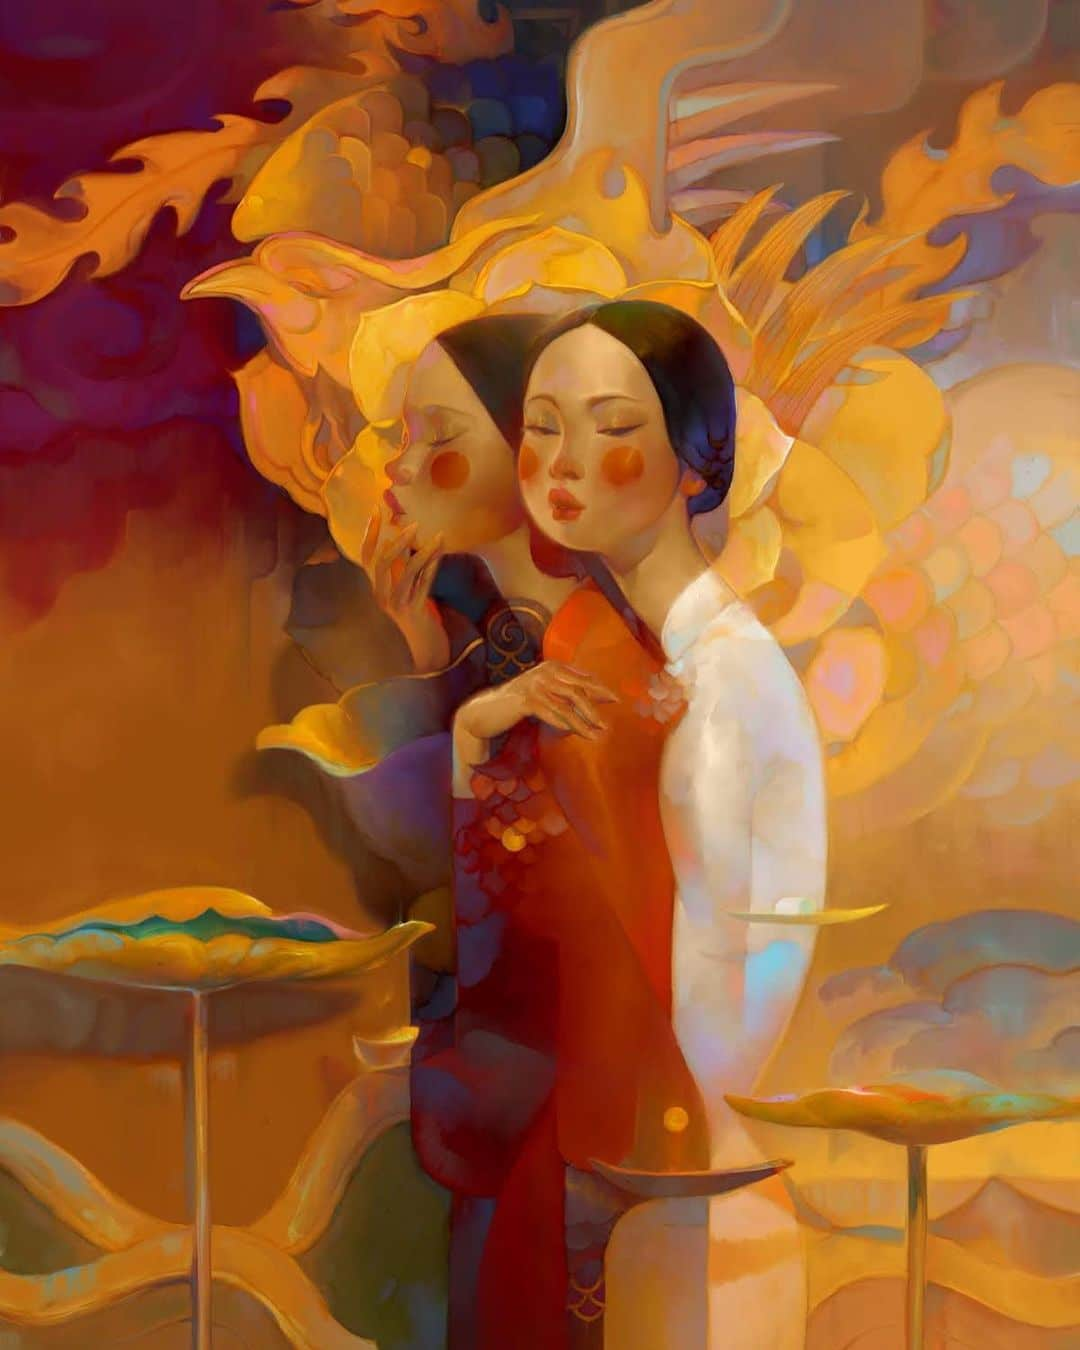 Digital Illustrations of Women by Thanh Nhan Nguyen